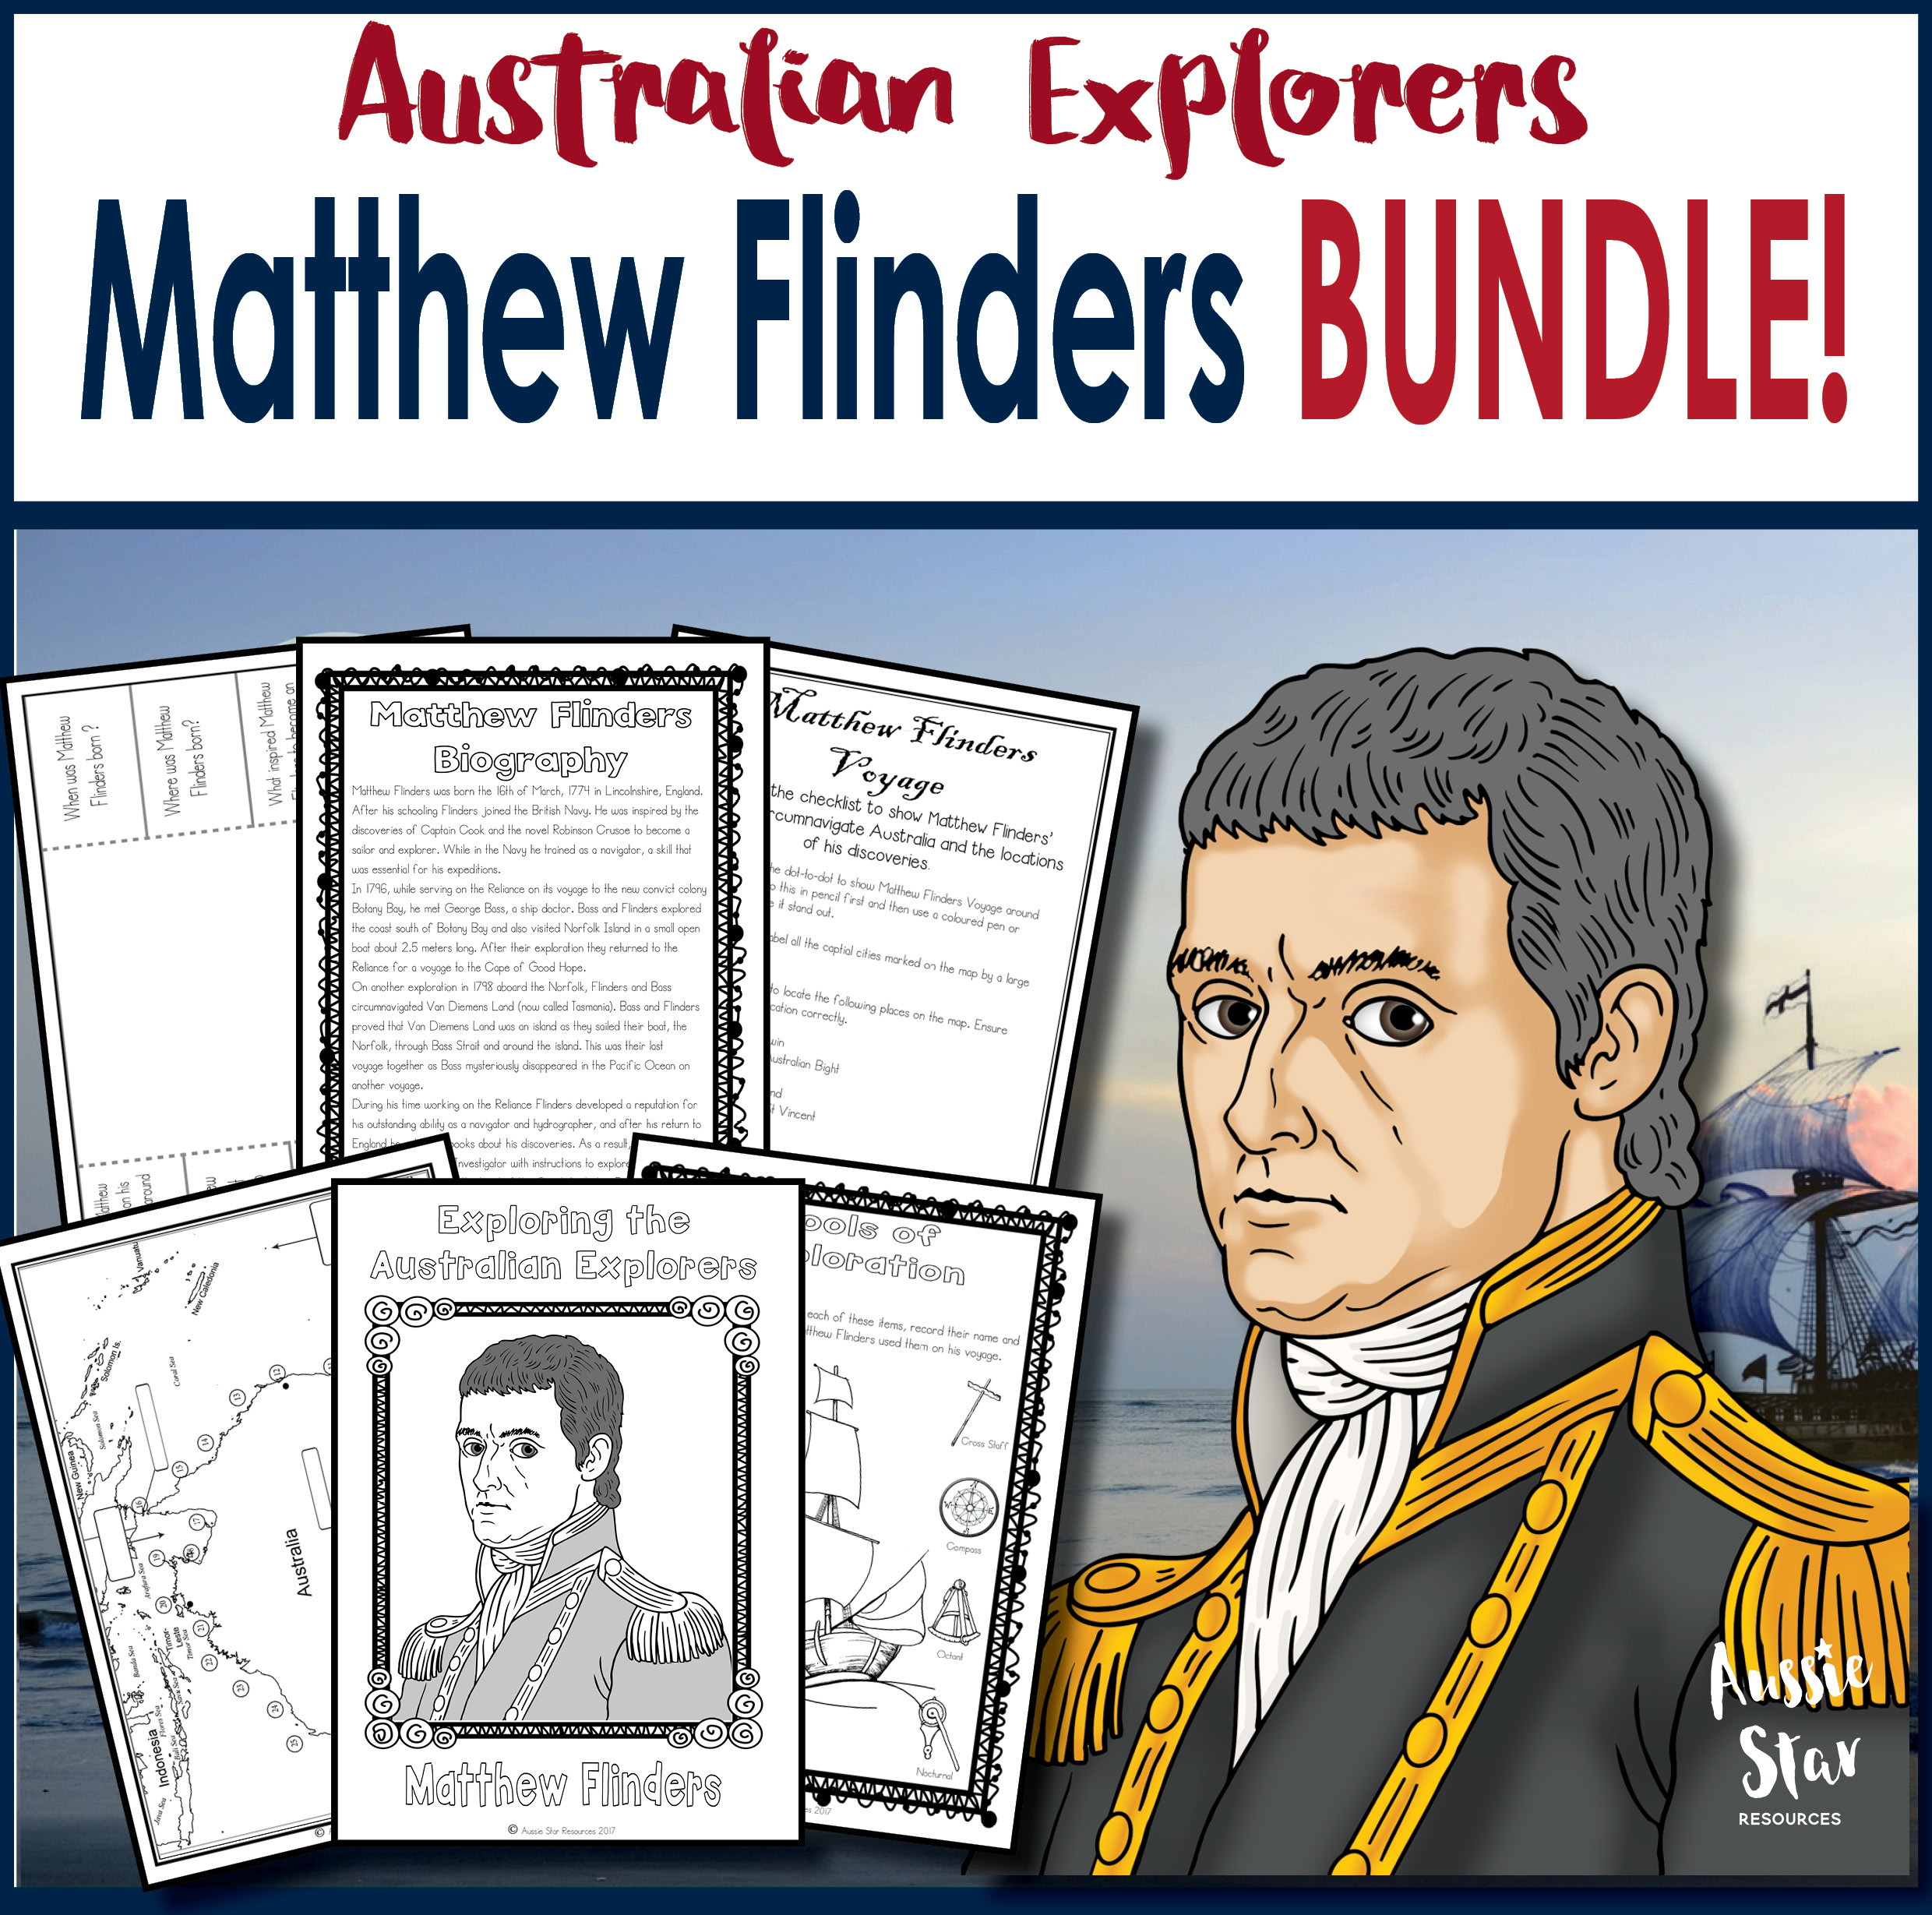 Australian_Explorer_matthew_flinders_bundle